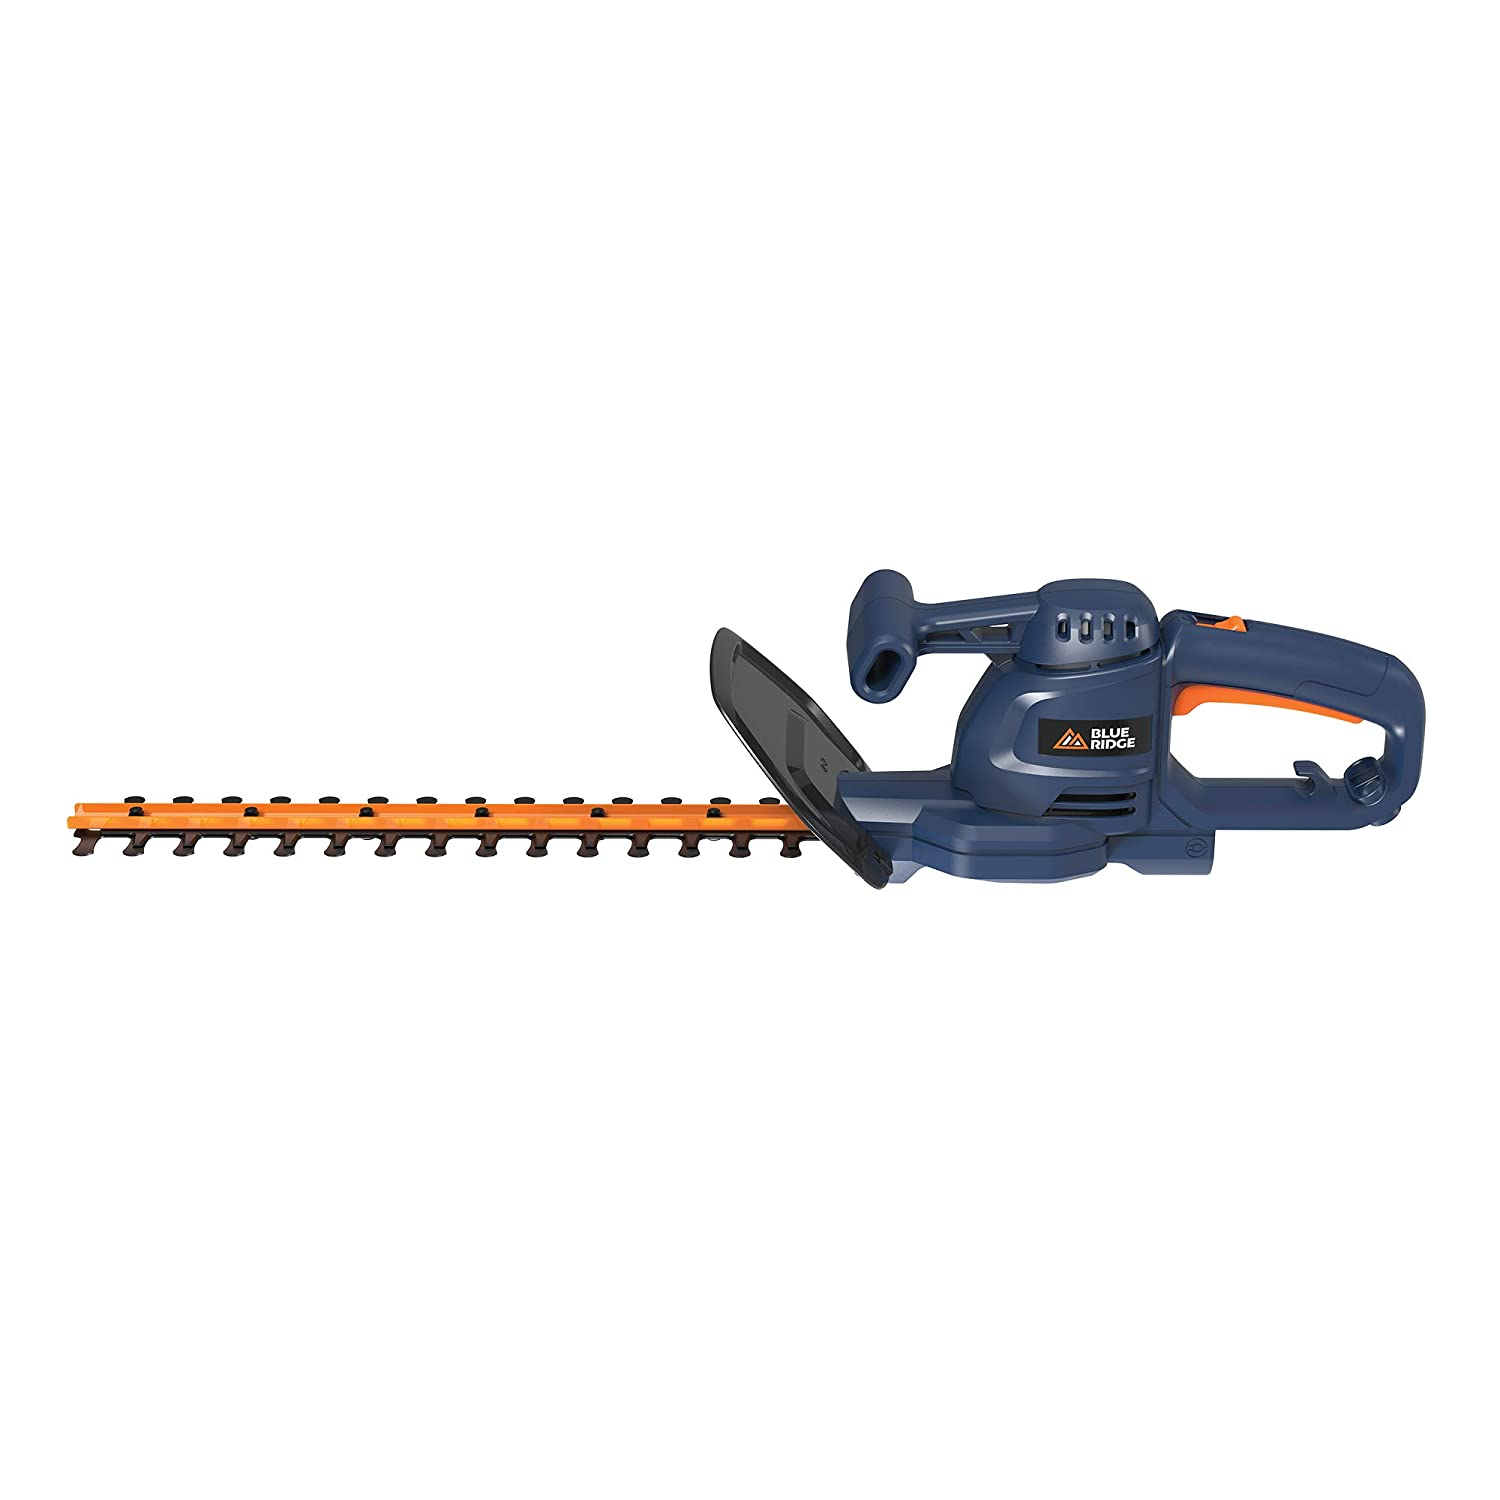 BLUE RIDGE BR8200U Corded 3.2A 17 Electric Hedge Trimmer